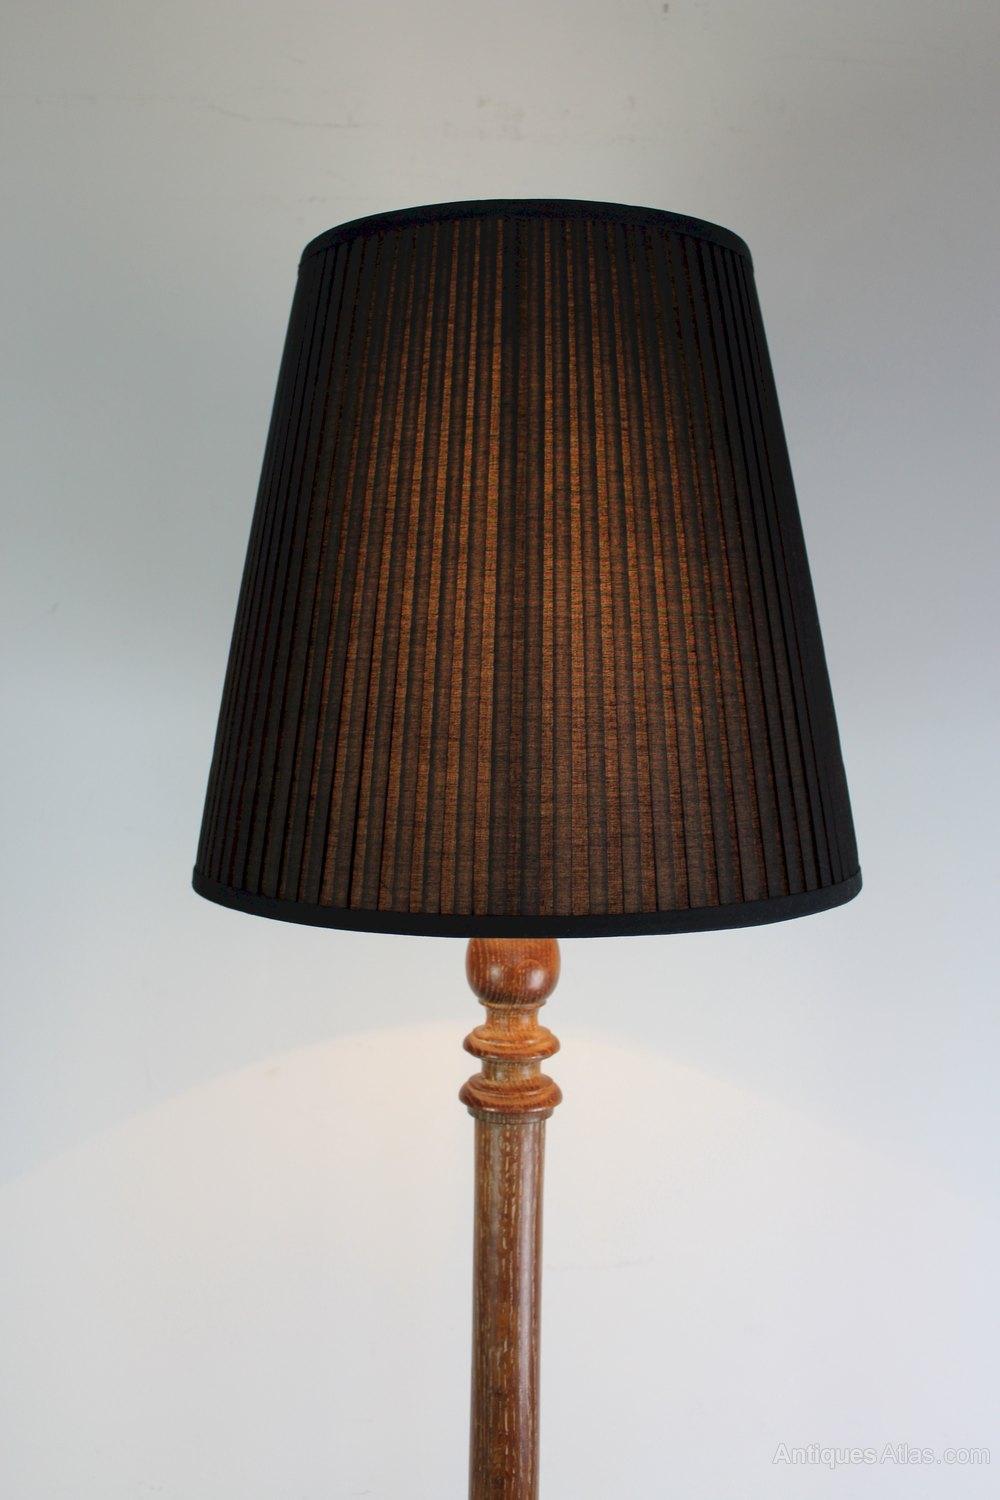 Antiques atlas 1930 39 s limed oak standard floor lamp for 1930s floor lamp